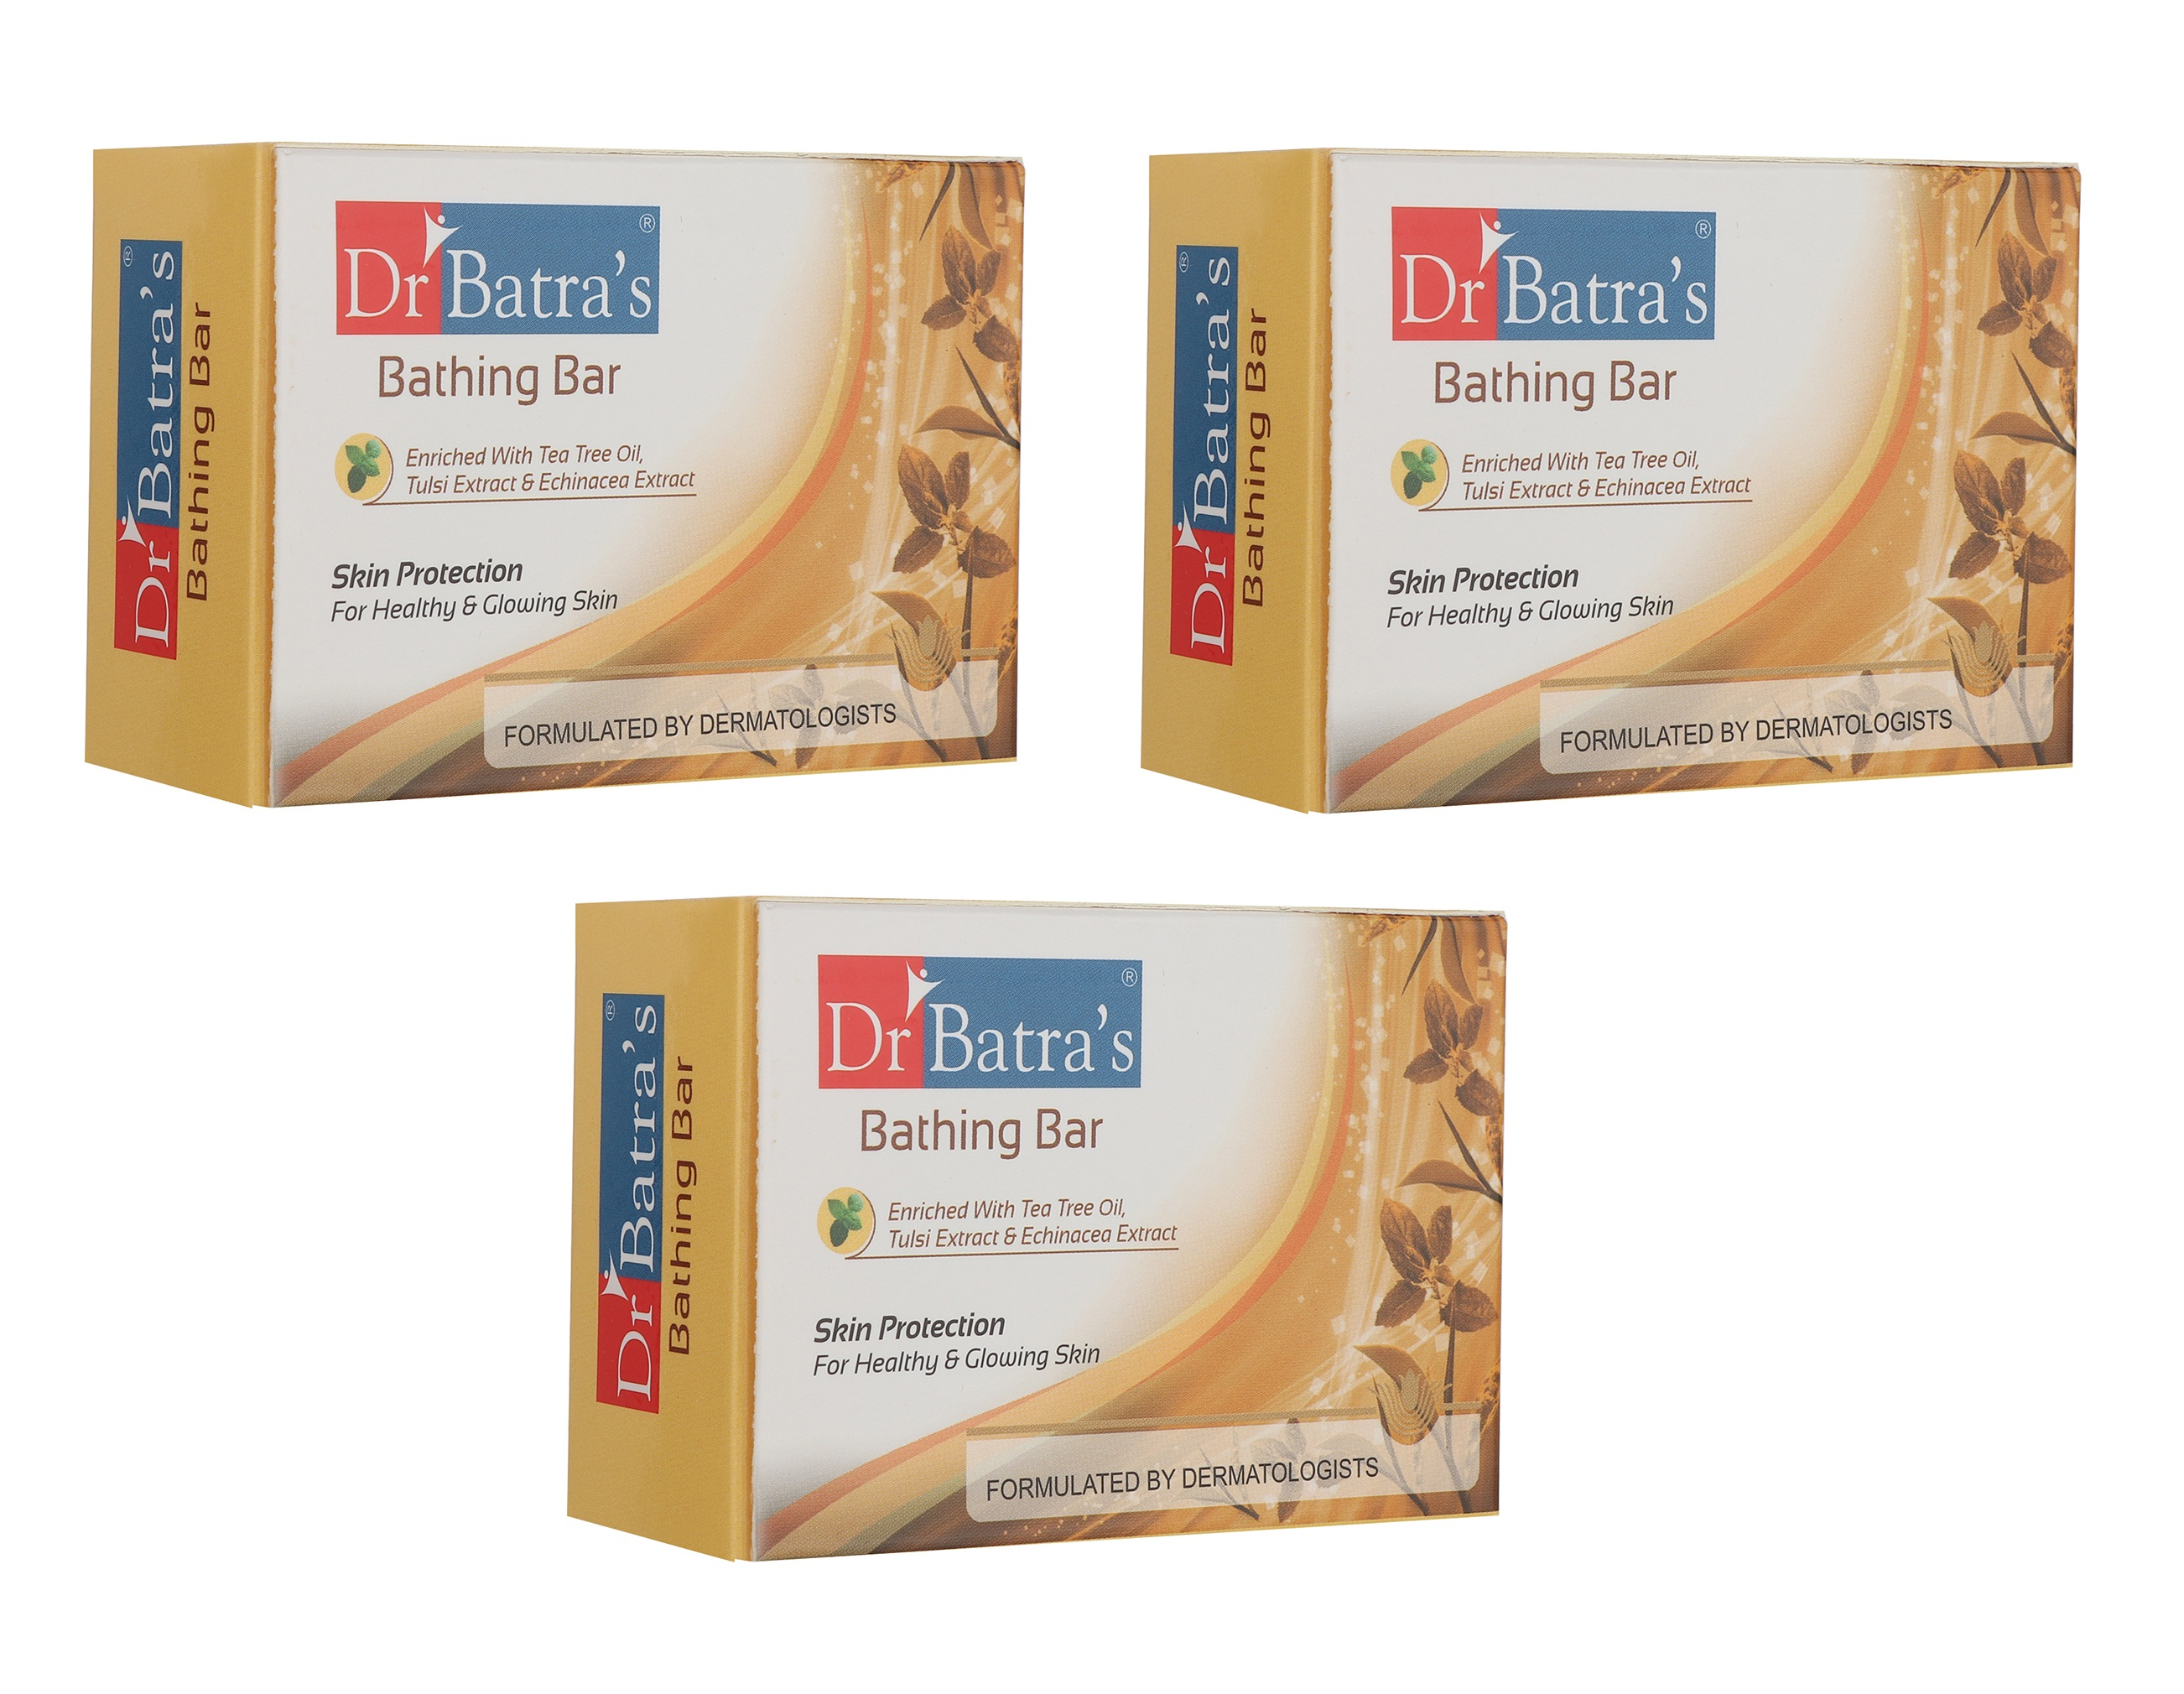 Dr Batra's | Dr Batra's Bathing Bar Skin Protection For Healthy & Glowing Skin Enriched With Tea Tree Oil, Tulsi Extract & Echinacea Extract - 125 gm (Pack of 3)